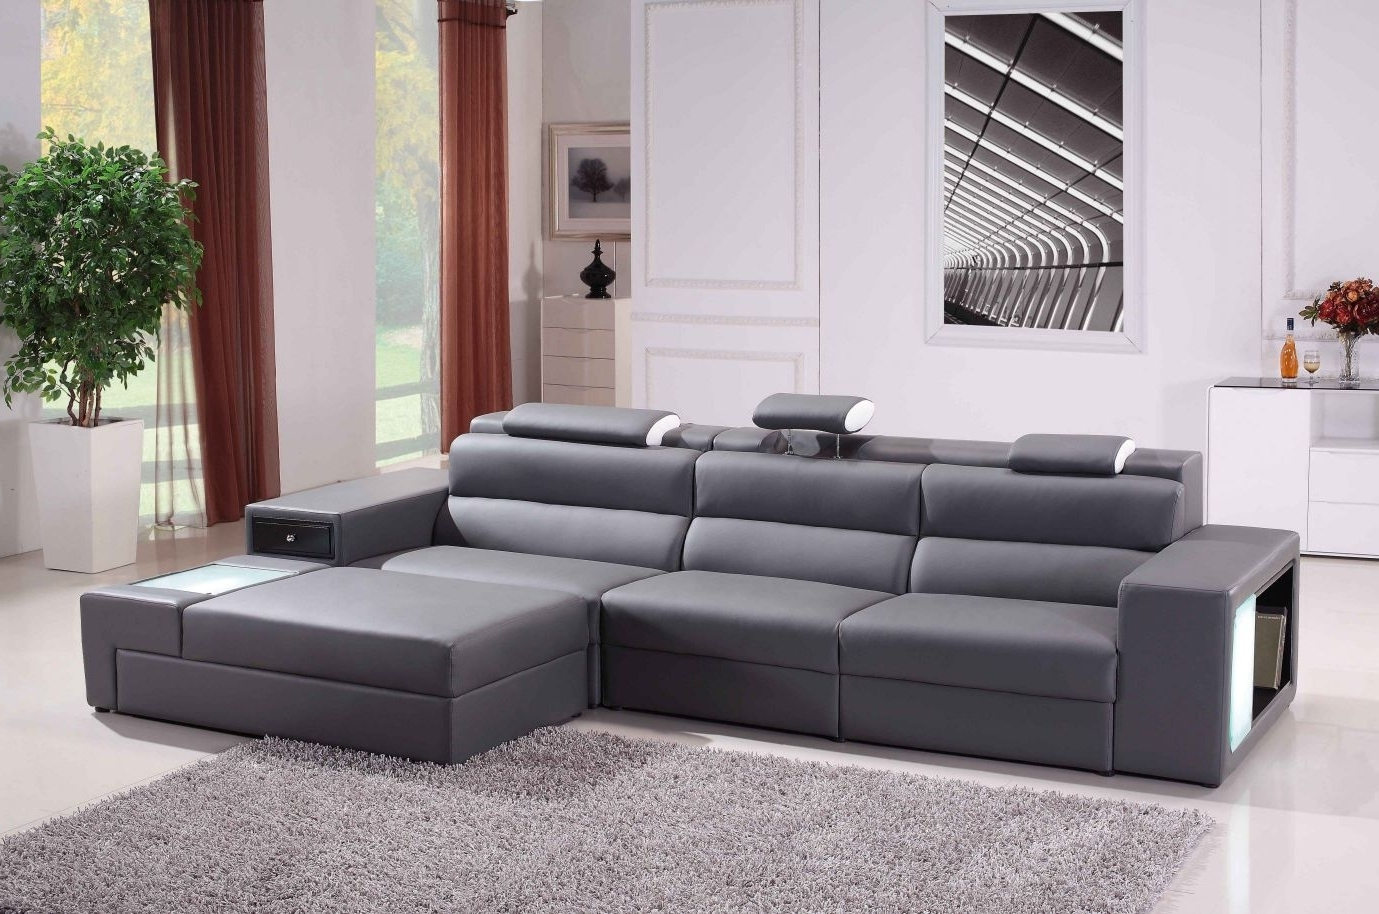 Best And Newest High Quality Sectional Sofas With Regard To Stunning Bedroom Grey Couch Red Sofa Chaise Real Leather Picture (View 3 of 15)